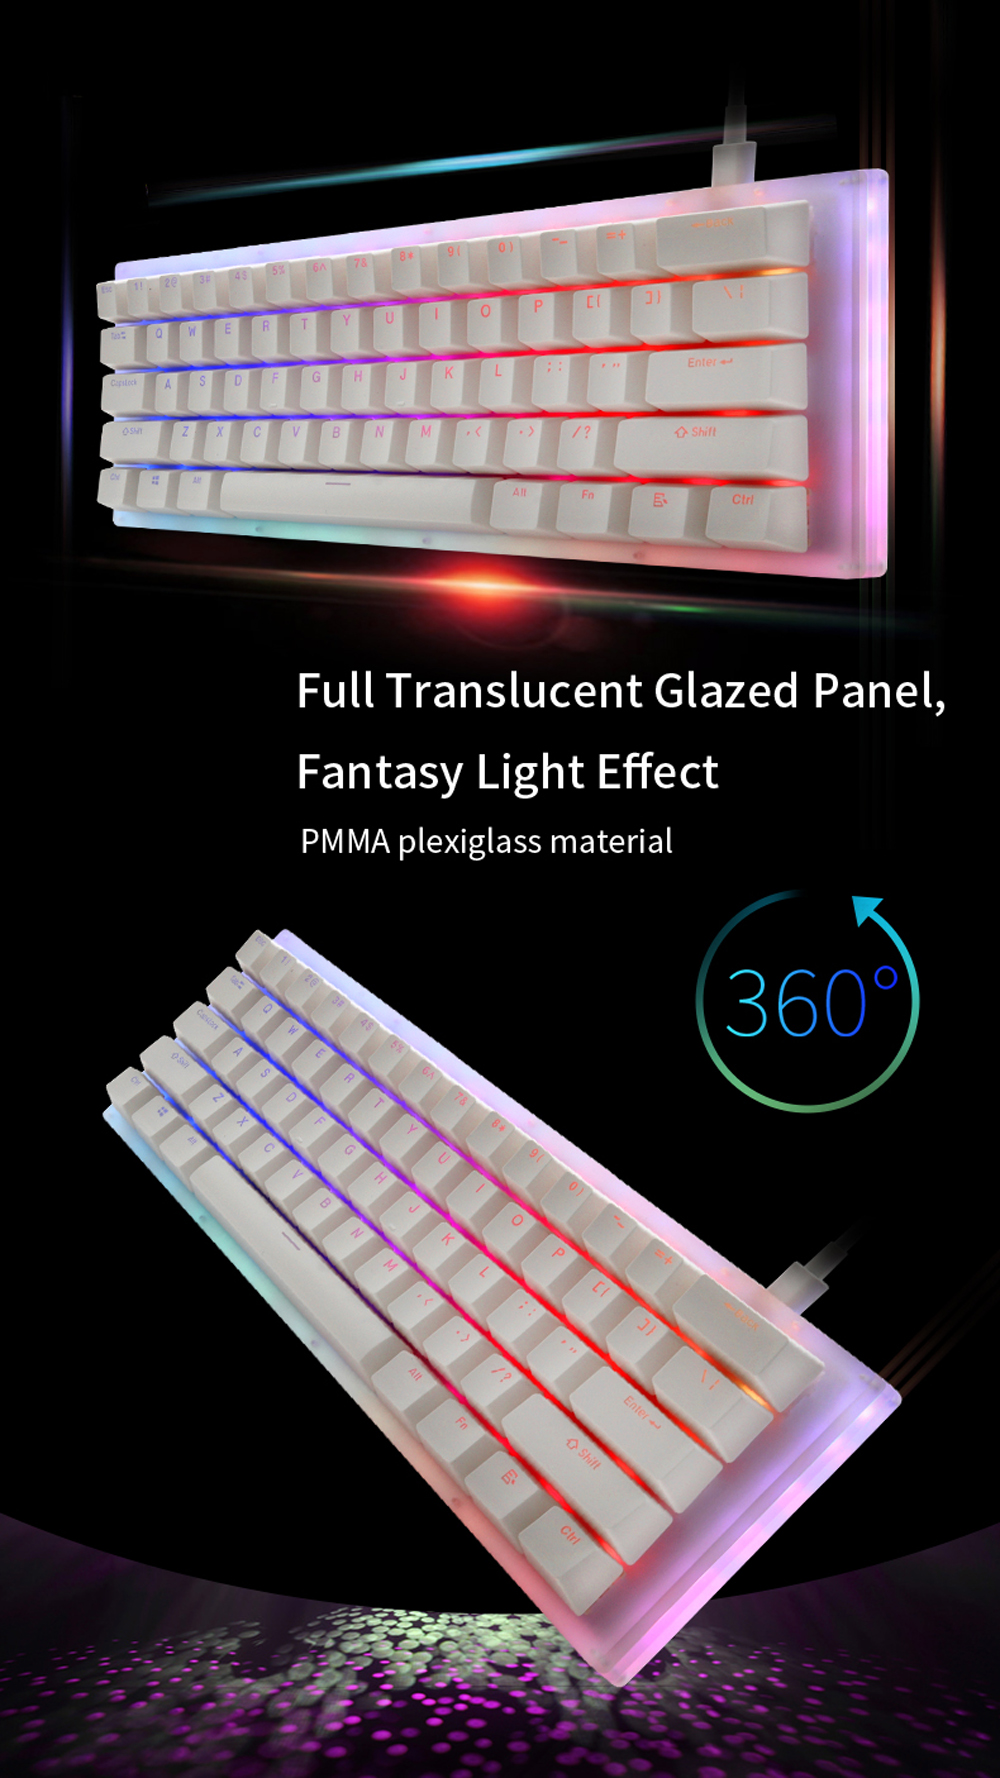 GamaKay K61 61 Keys Mechanical Gaming Keyboard Hot Swappable Type-C 3.1 Wired USB Translucent Glass Base Gateron Switch ABS Two-color Keycap NKRO RGB Gaming Keyboard